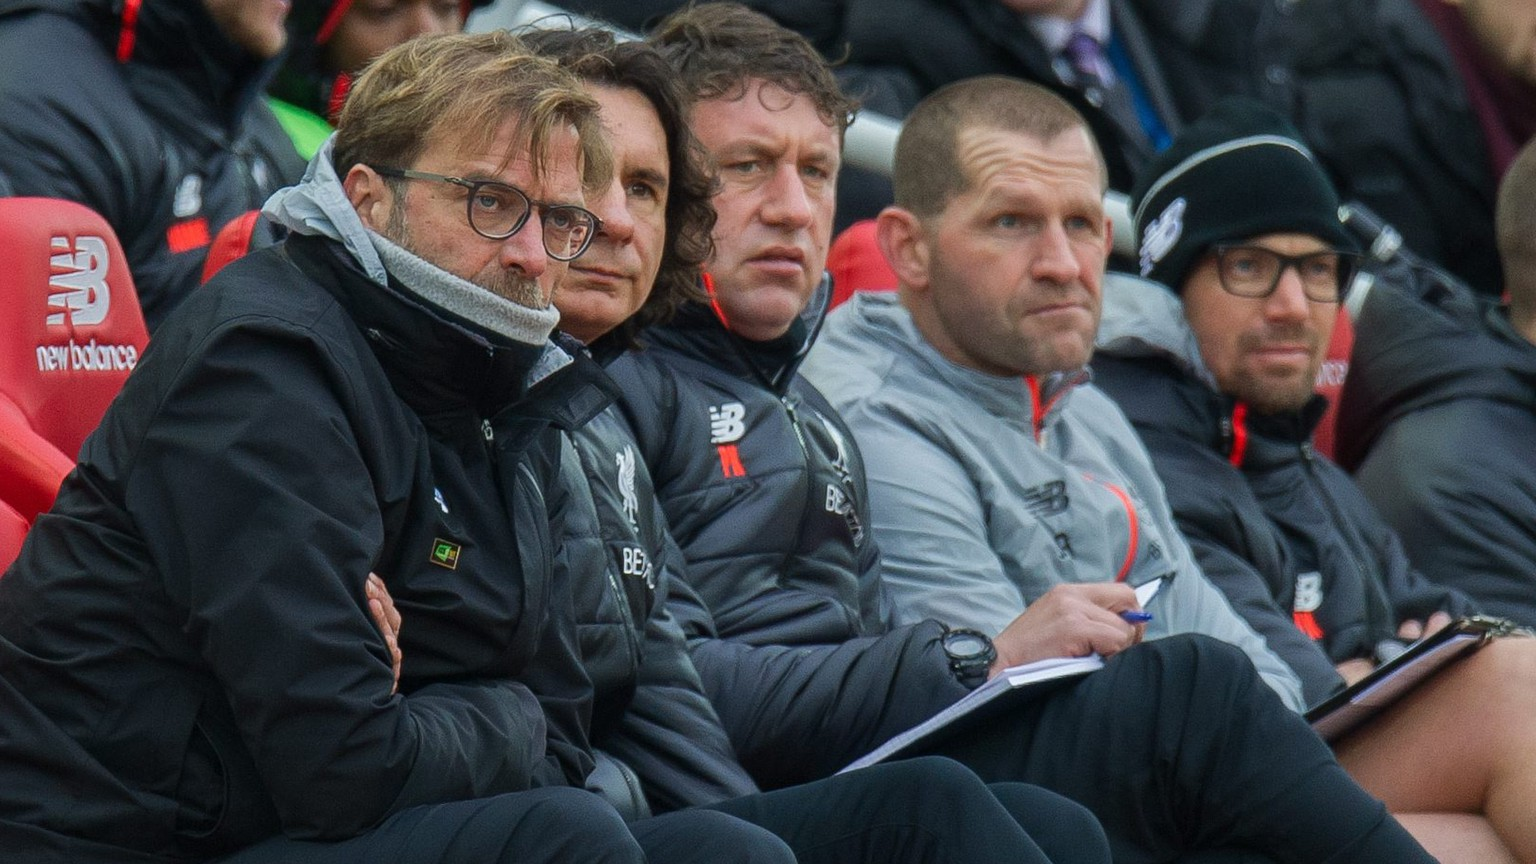 epa05738446 Liverpool Manager Juergen Klopp (L) reacts during the English Premier League soccer match between Liverpool and Swansea City held at Anfield, Liverpool, Britain, 21 January 2017.  EPA/PETER POWELL EDITORIAL USE ONLY. No use with unauthorized audio, video, data, fixture lists, club/league logos or 'live' services. Online in-match use limited to 75 images, no video emulation. No use in betting, games or single club/league/player publications